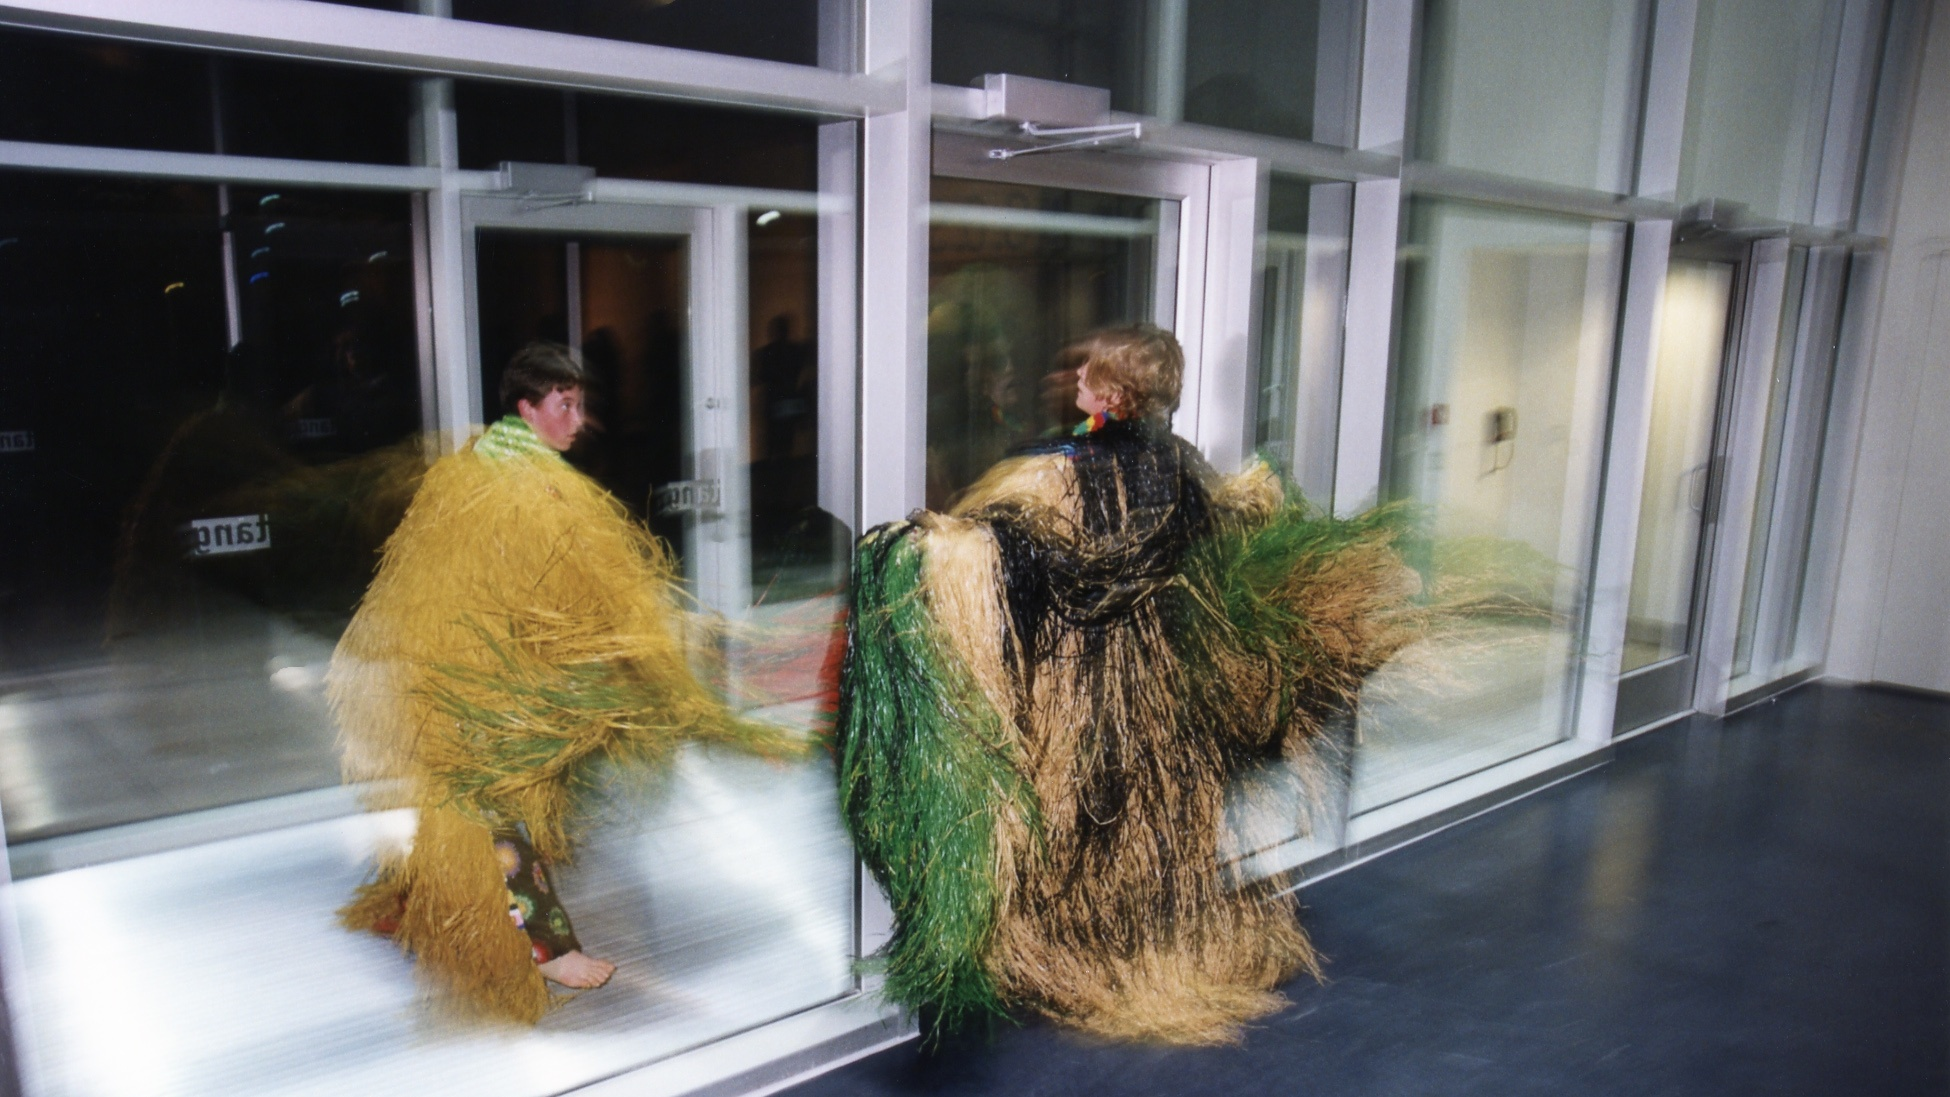 Two light-skinned people twirl in robes made of long grasses next to a glass entryway.